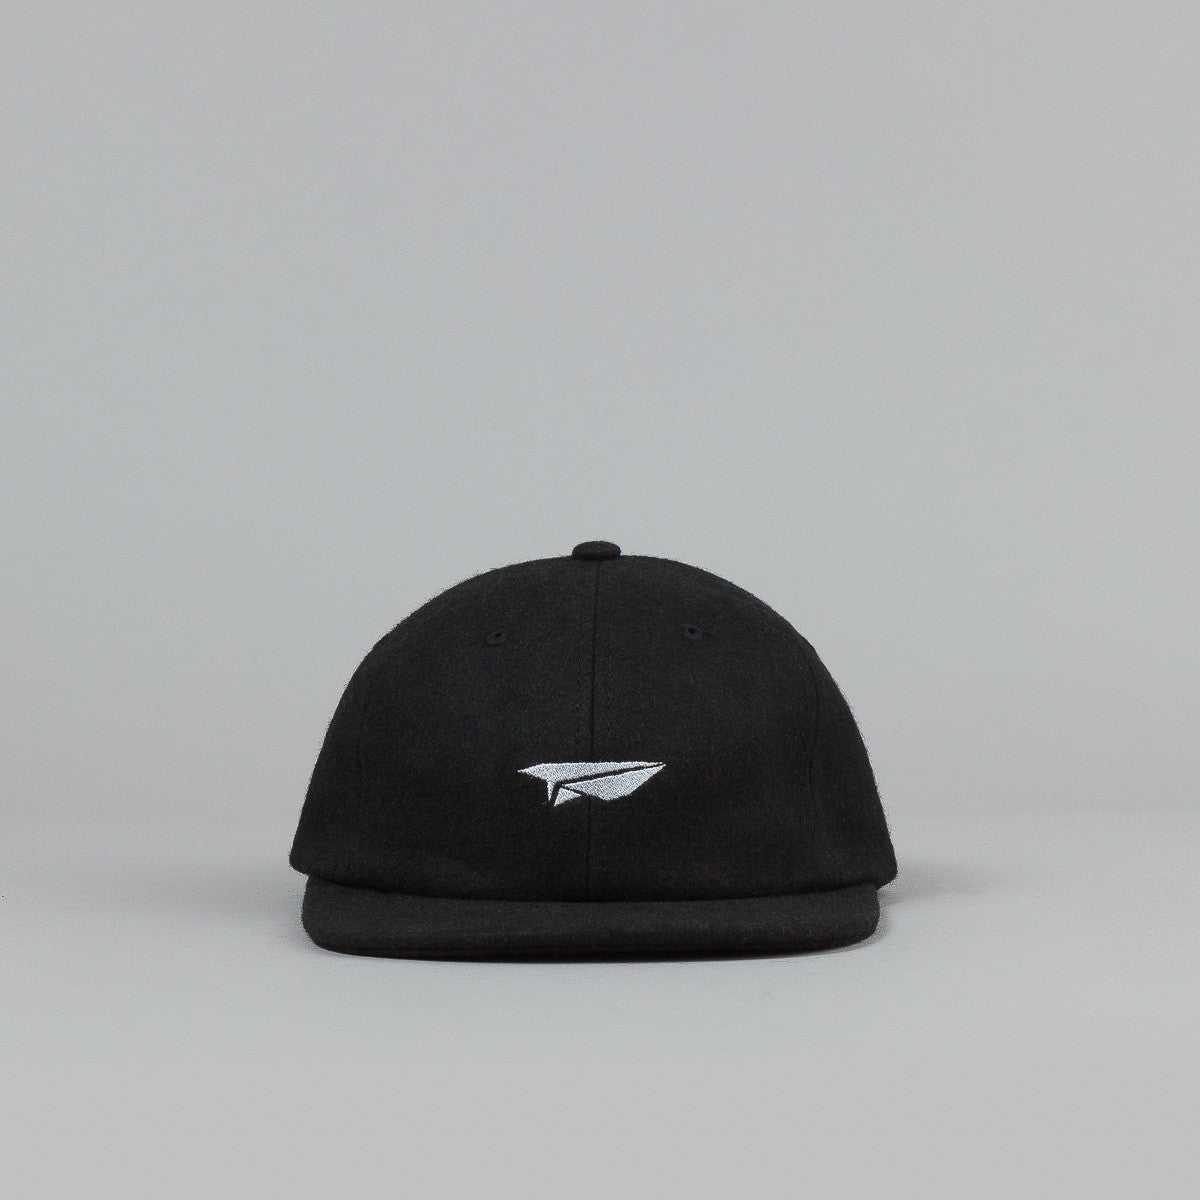 Benny Gold Classic Plane Wool 6 Panel Cap - Back